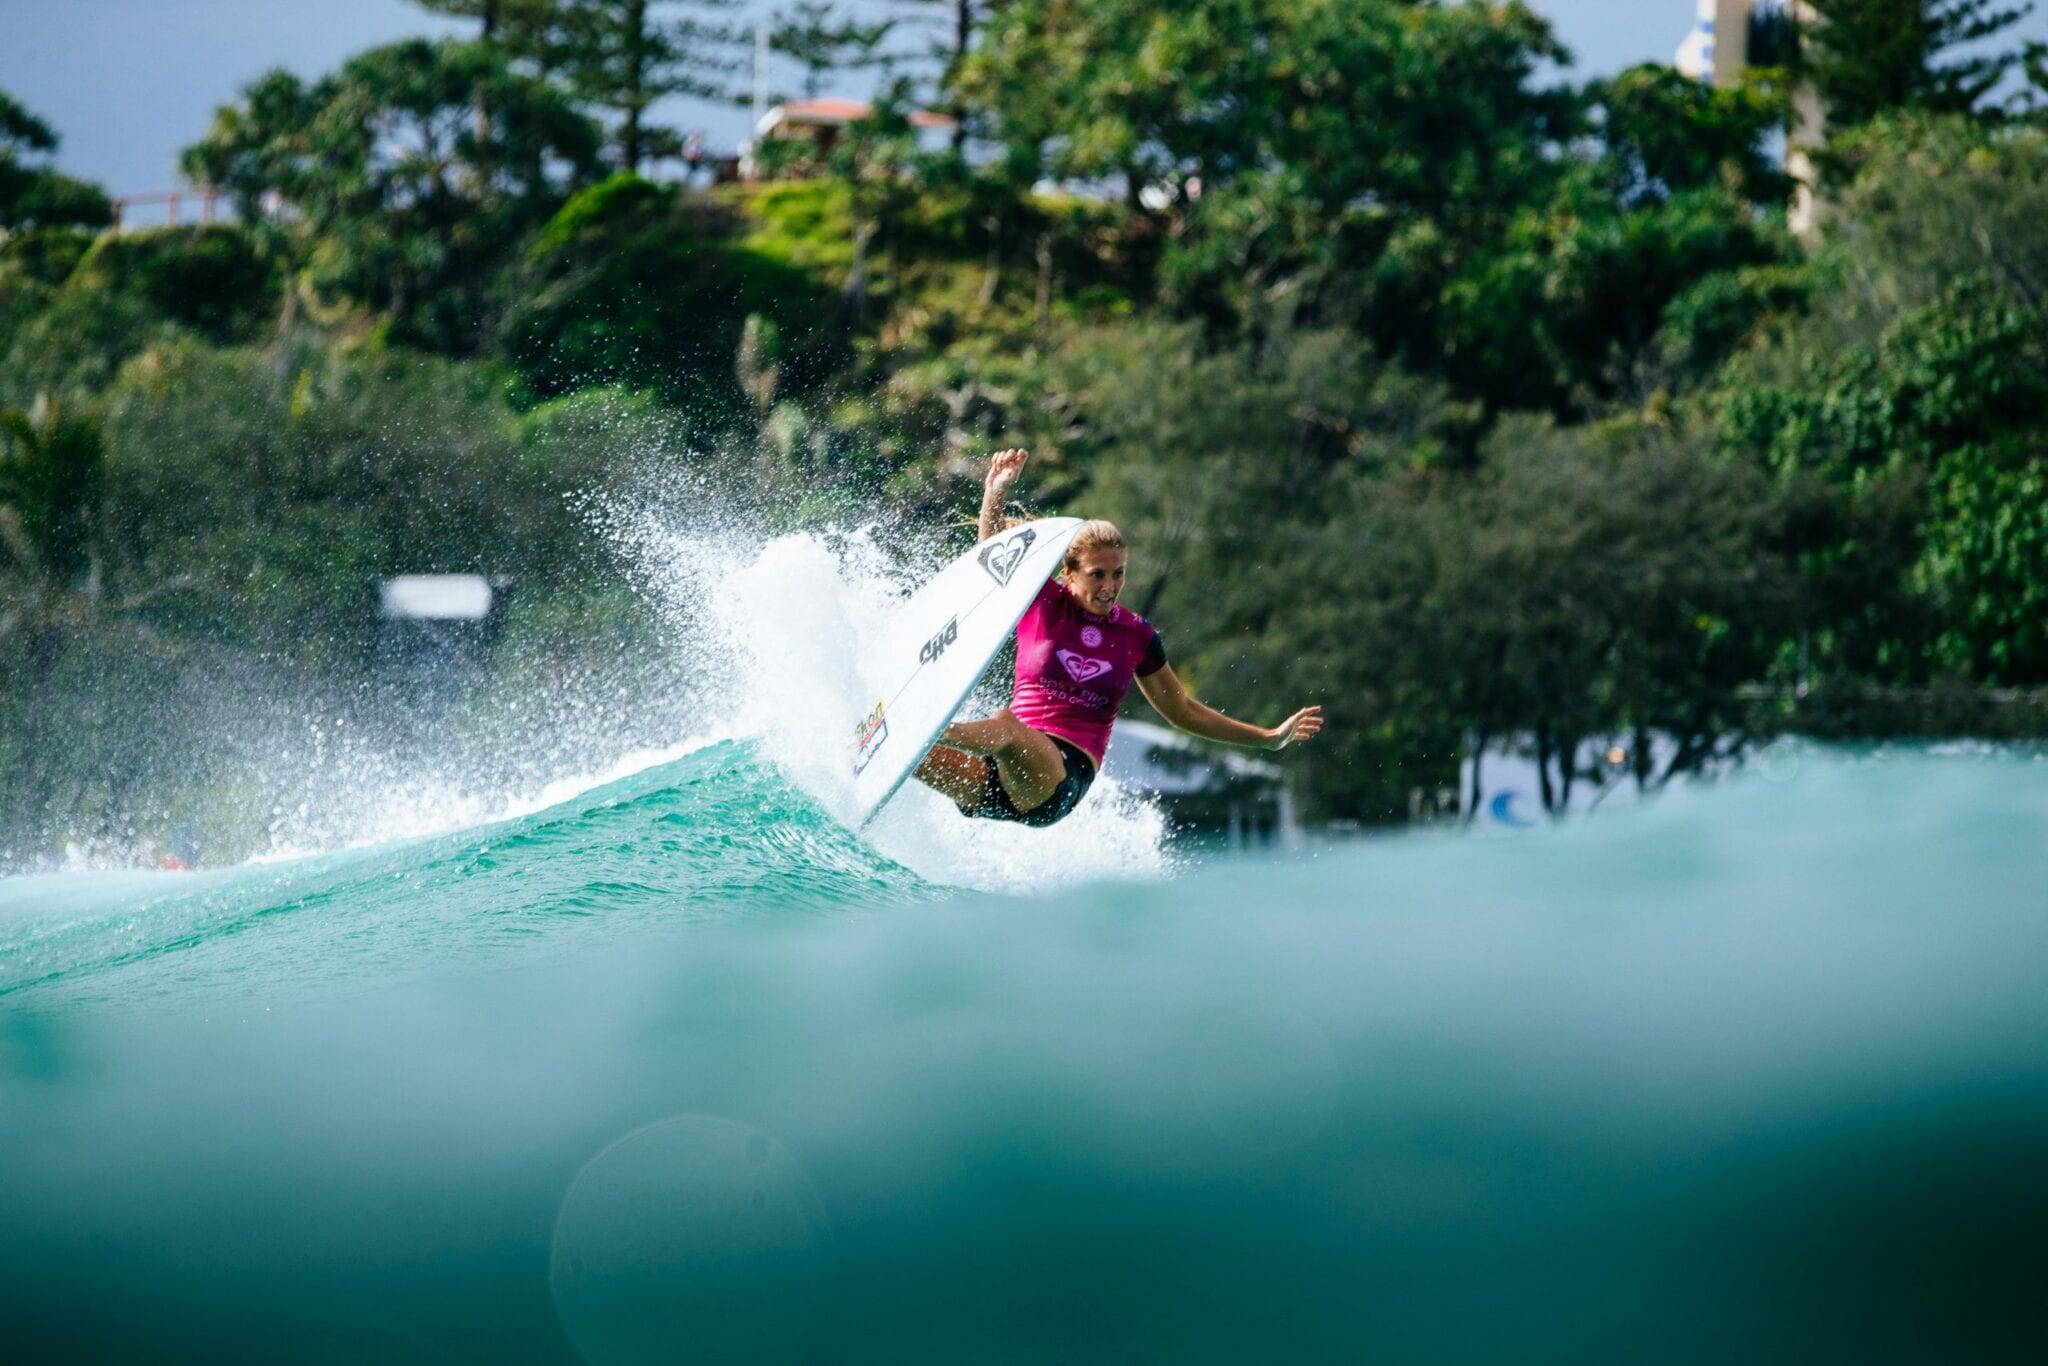 Steph Gilmore surfing news